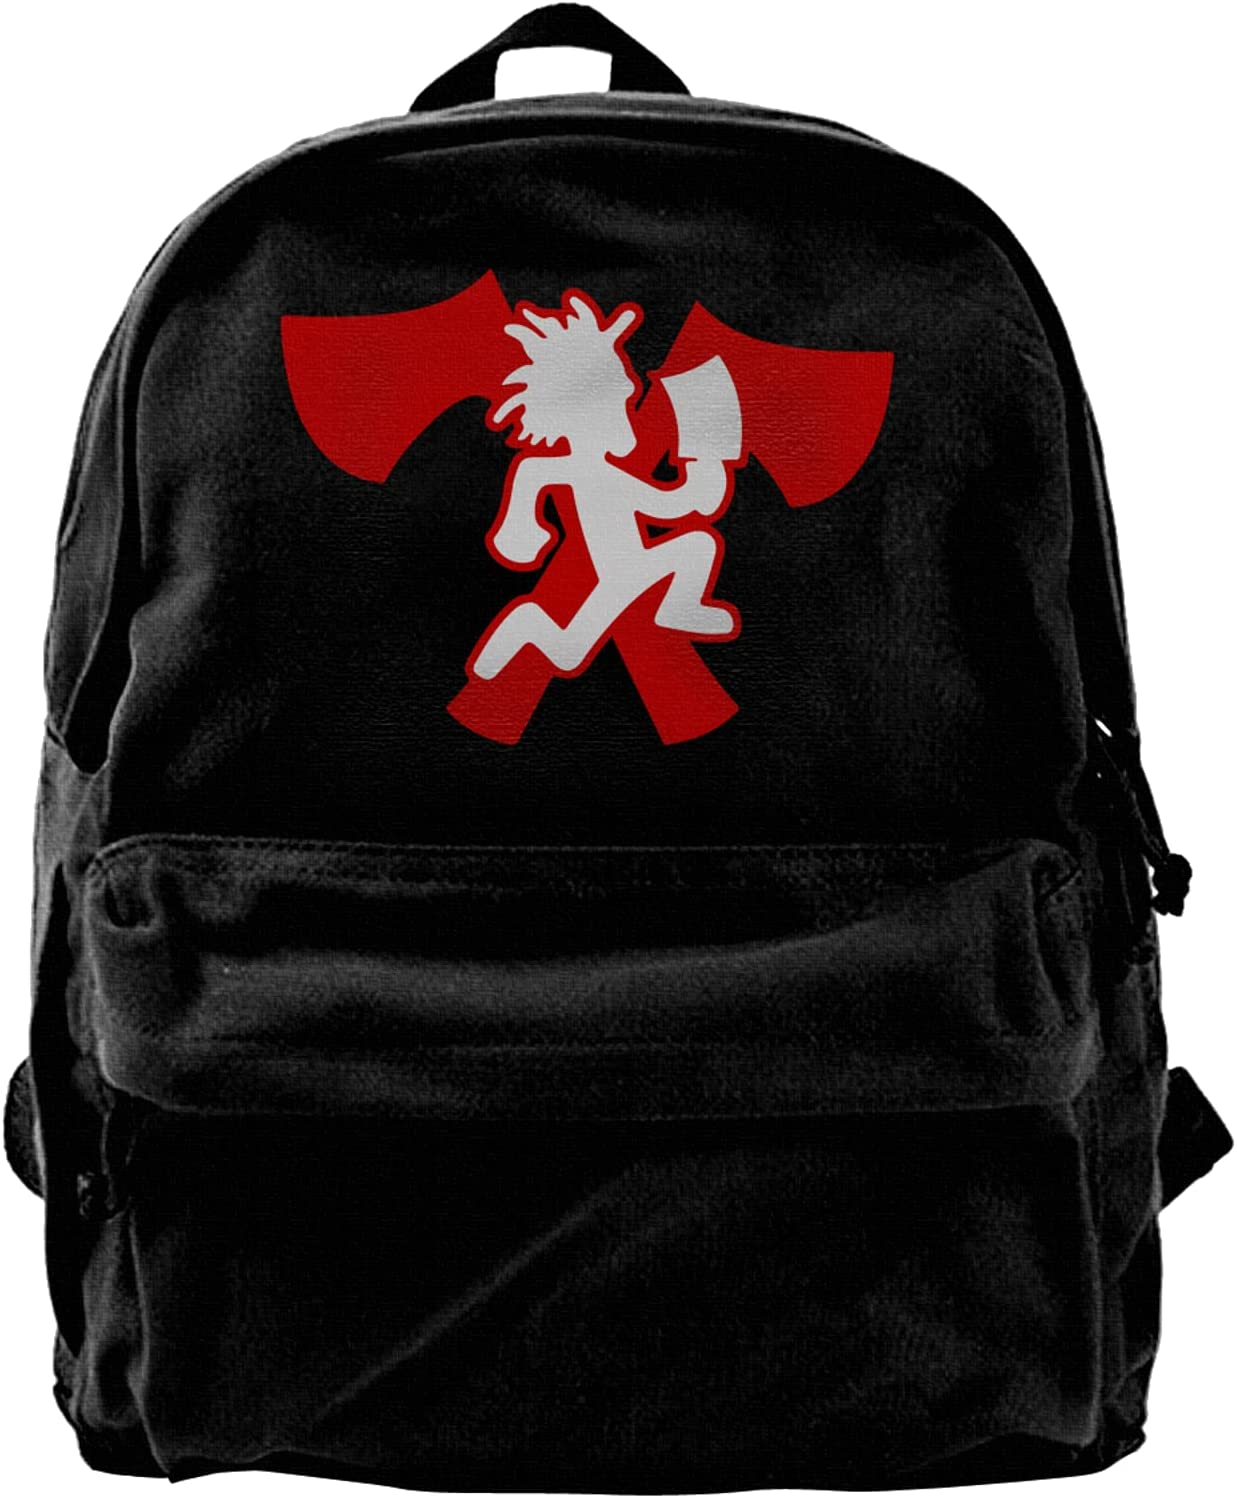 Hatchetman Icp Logo Canvas Backpacks Limited time cheap sale Classic Bags Laptop High-Capacity S